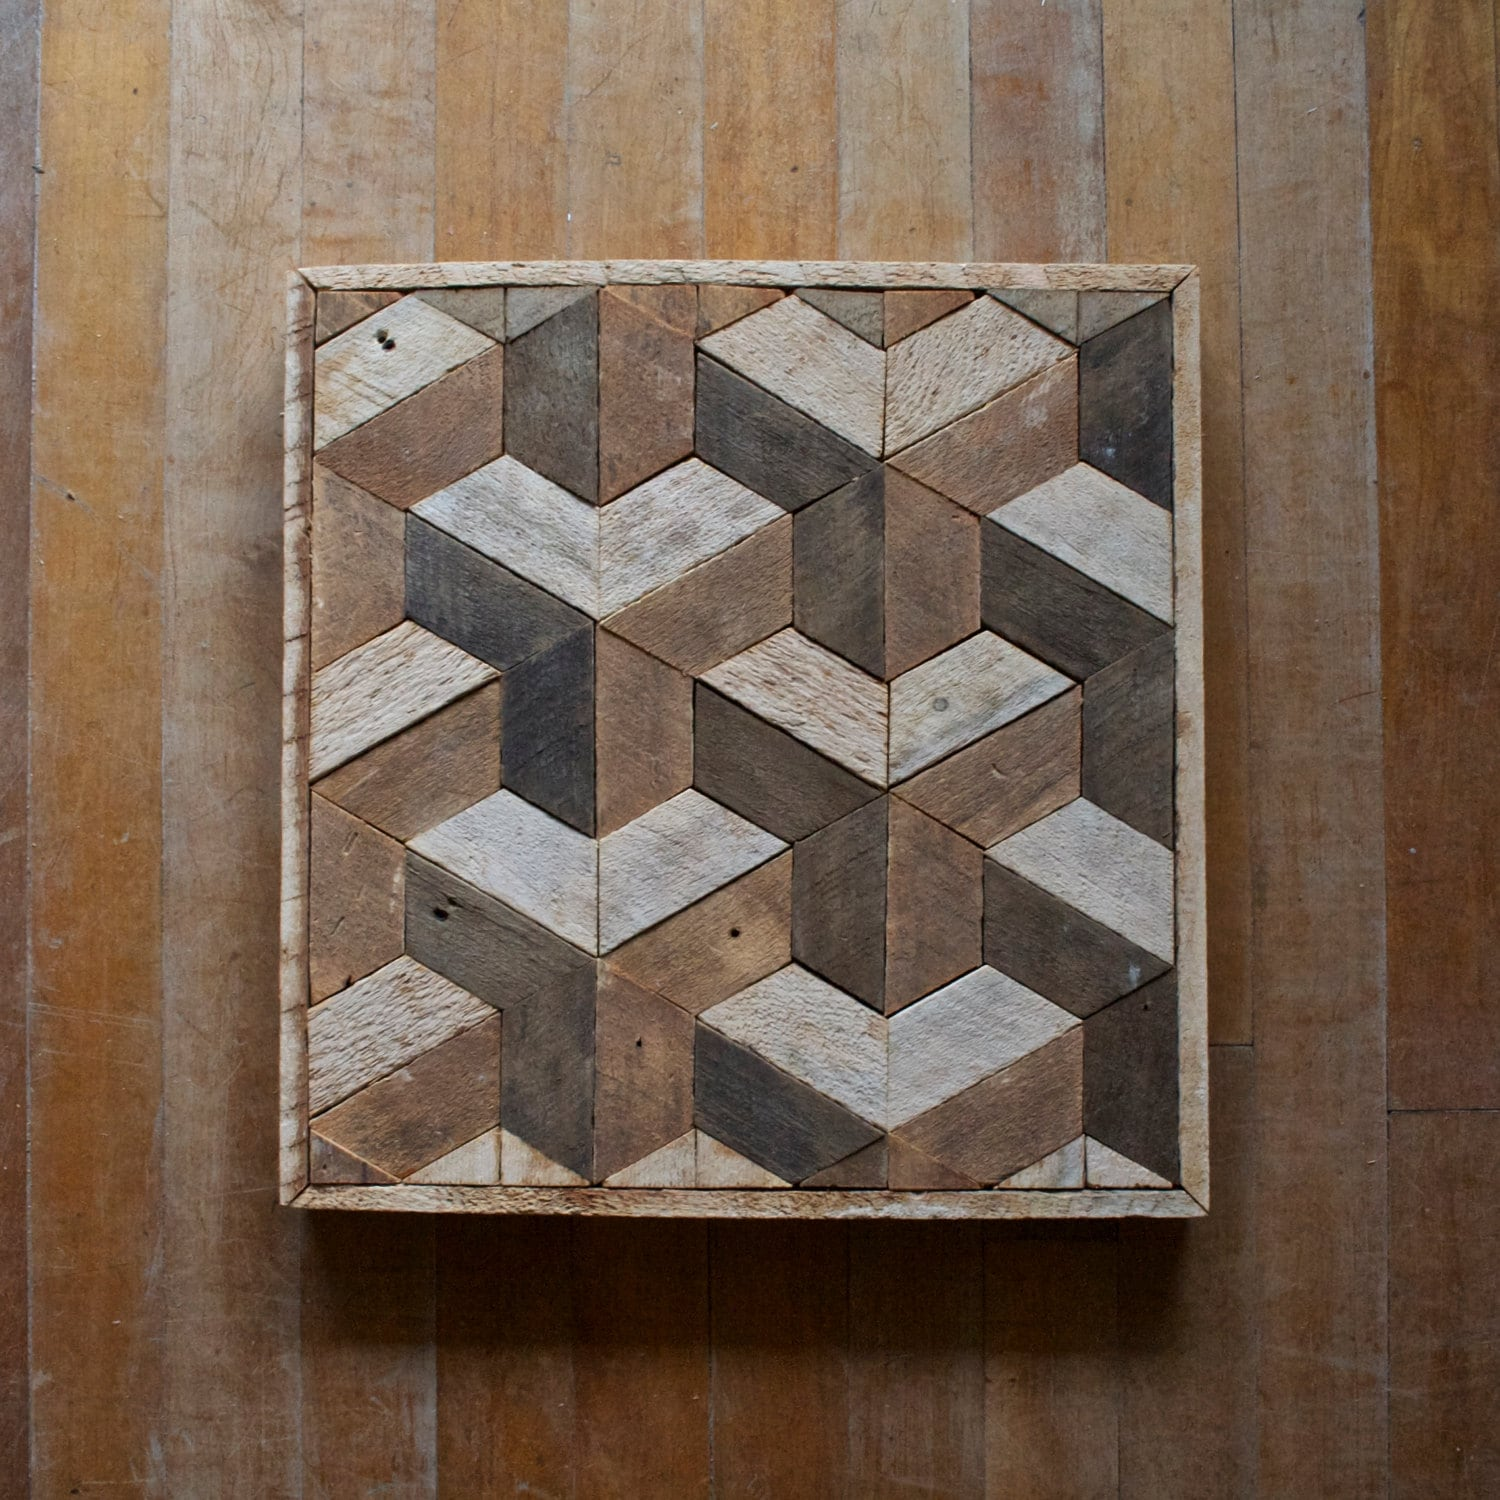 Reclaimed wood wall art decor lath geometric pattern Painting geometric patterns on walls